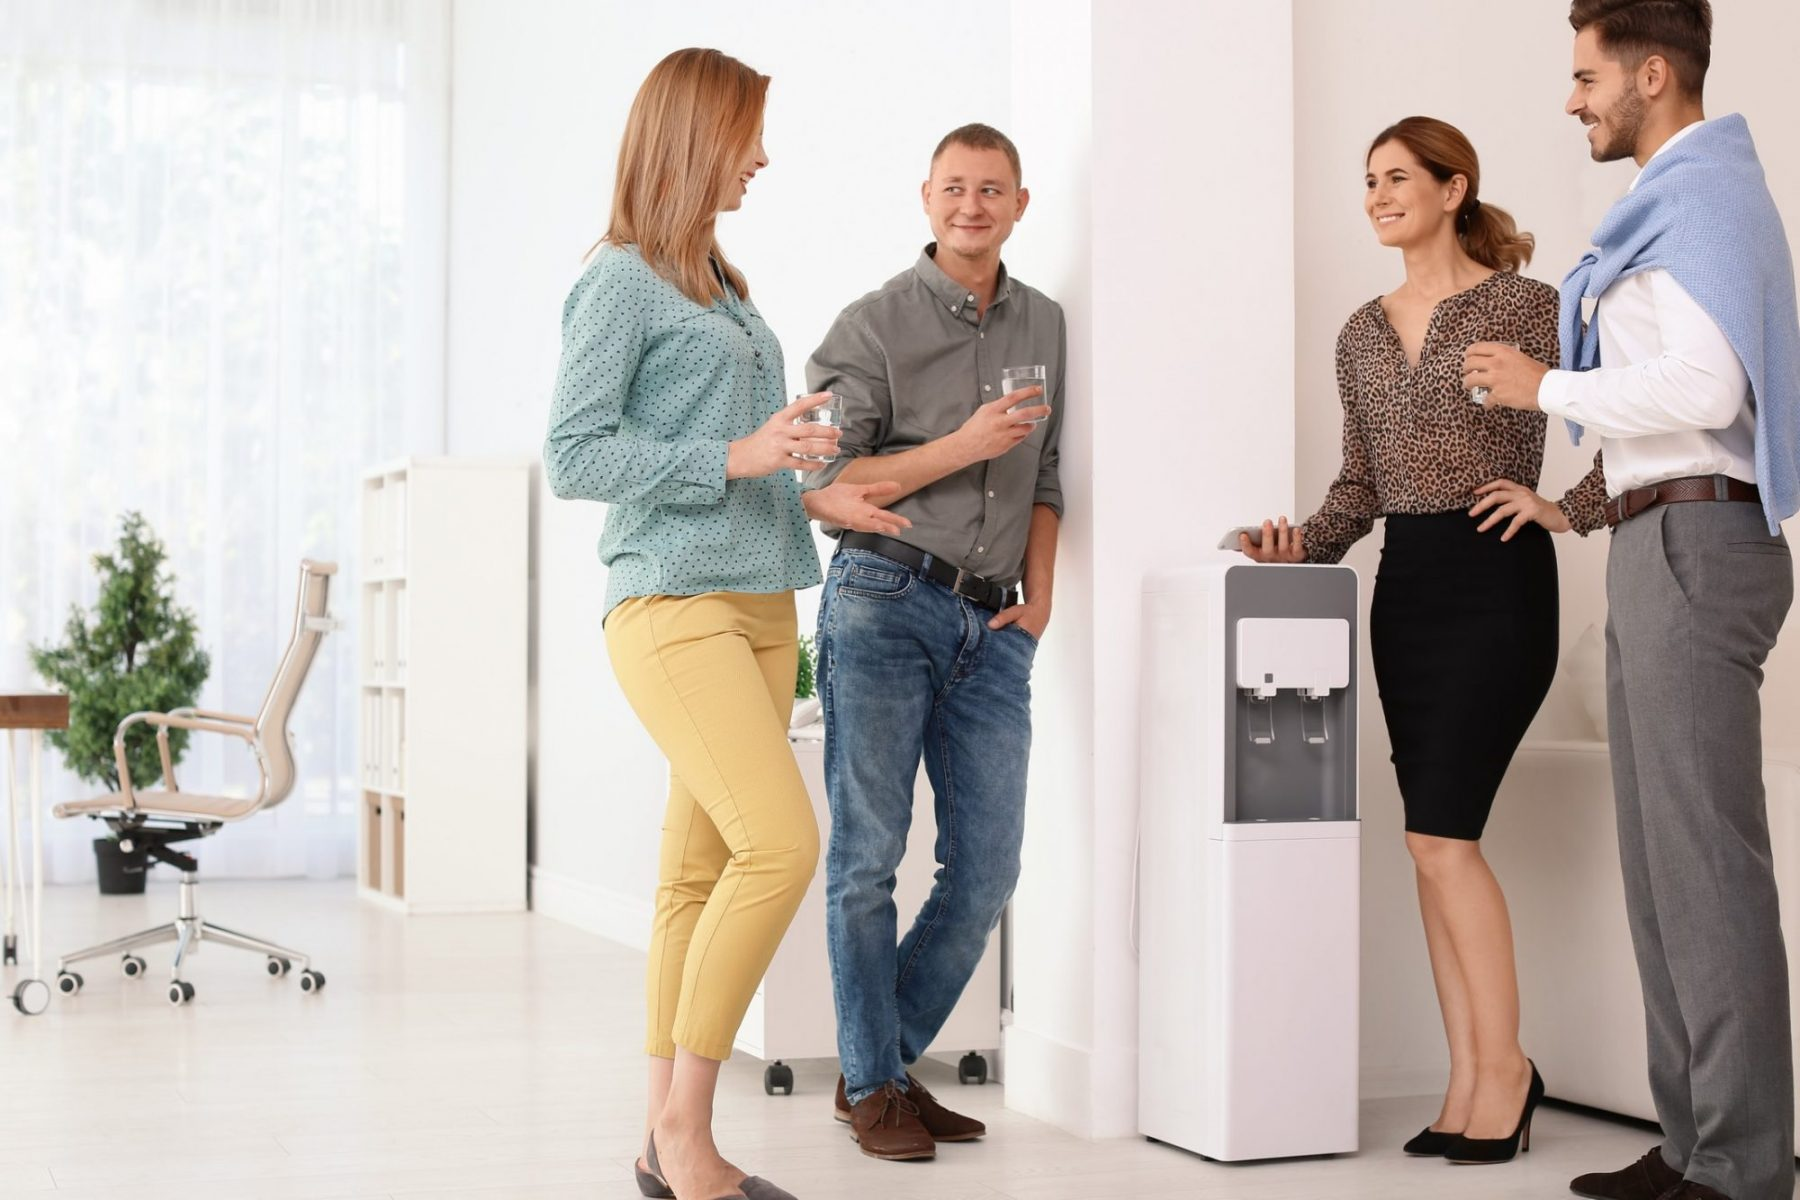 Omaha Positive Lifestyle Choices | Healthy Water Filtration | Employee Benefit